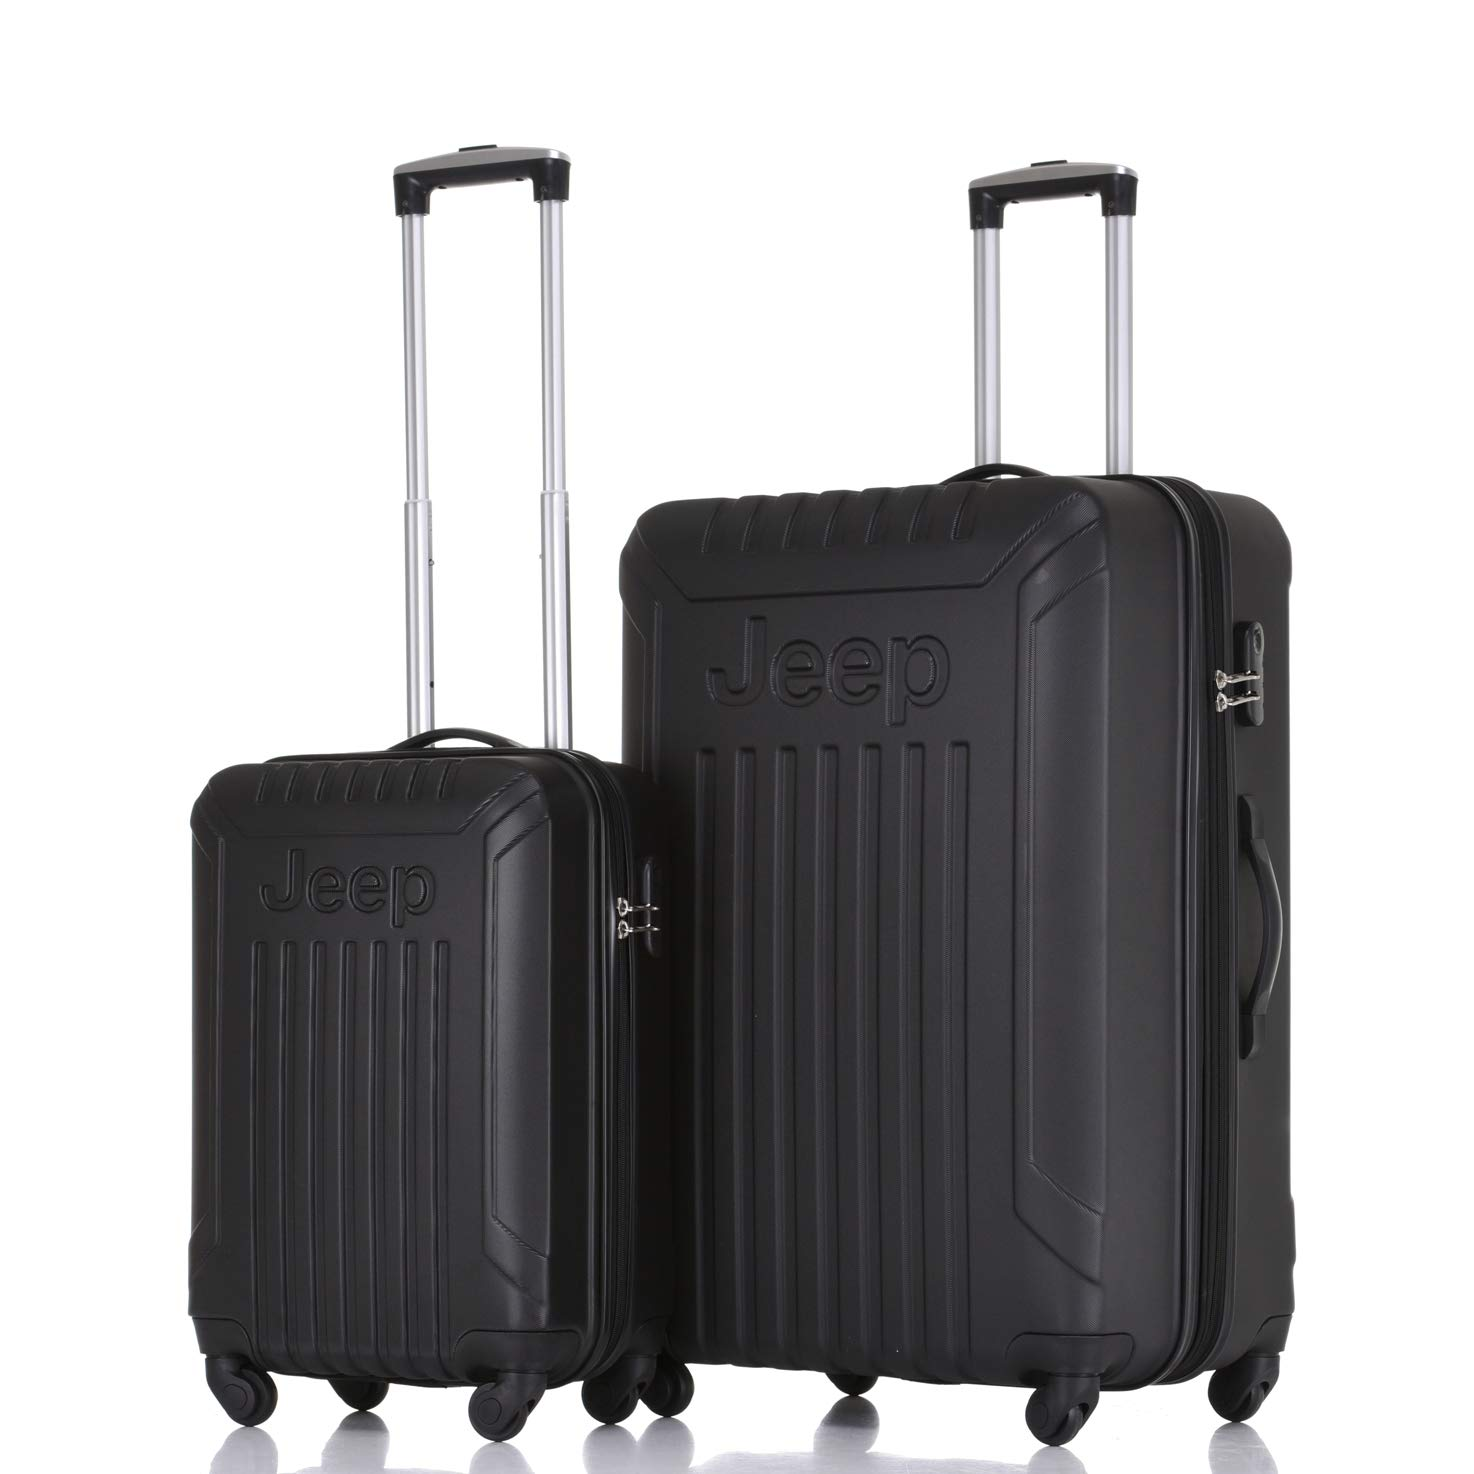 3c6119f69a Jeep Luggage Missouri 2019 Hard Case 3 Piece Suitcase Travel Trolley  Tourist Bag with Spinner Wheels Luggage Sets (Black) (20